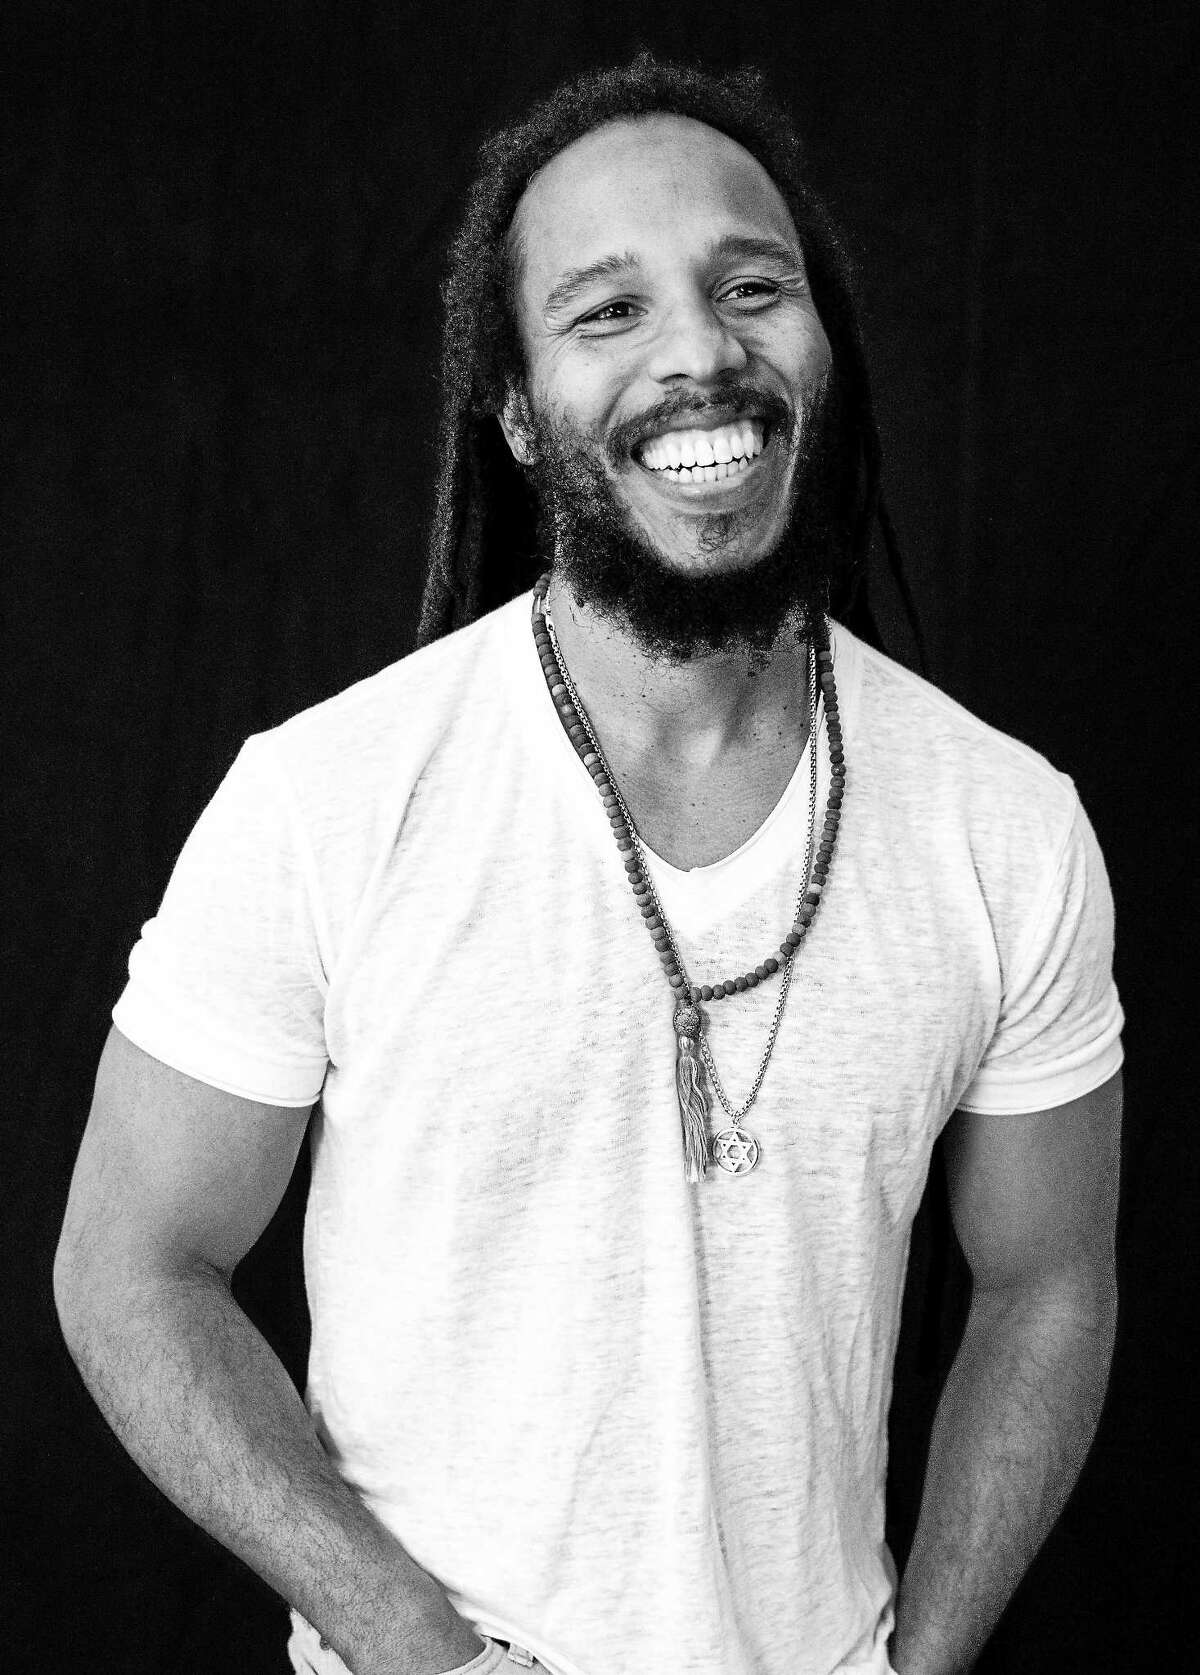 Photo by Malia James Musician Ziggy Marley, the oldest son of Rita Marley and reggae legend Bob Marley, will perform at the Klein Auditorium in Bridgeport on Sunday, Oct. 12. Early this year, Ziggy released his fifth solo album, entitled ìFly Rastaî, with background vocals from Cedella Marley, Sharon Marley, Rica Newell, Tracy Hazzard, Ian ìBeezyî Coleman, Vincent Brantley, Sean Dancy, and Tim Fowlles. For tickets or more information you can visit www.theklein.org or call 800-424-0160.